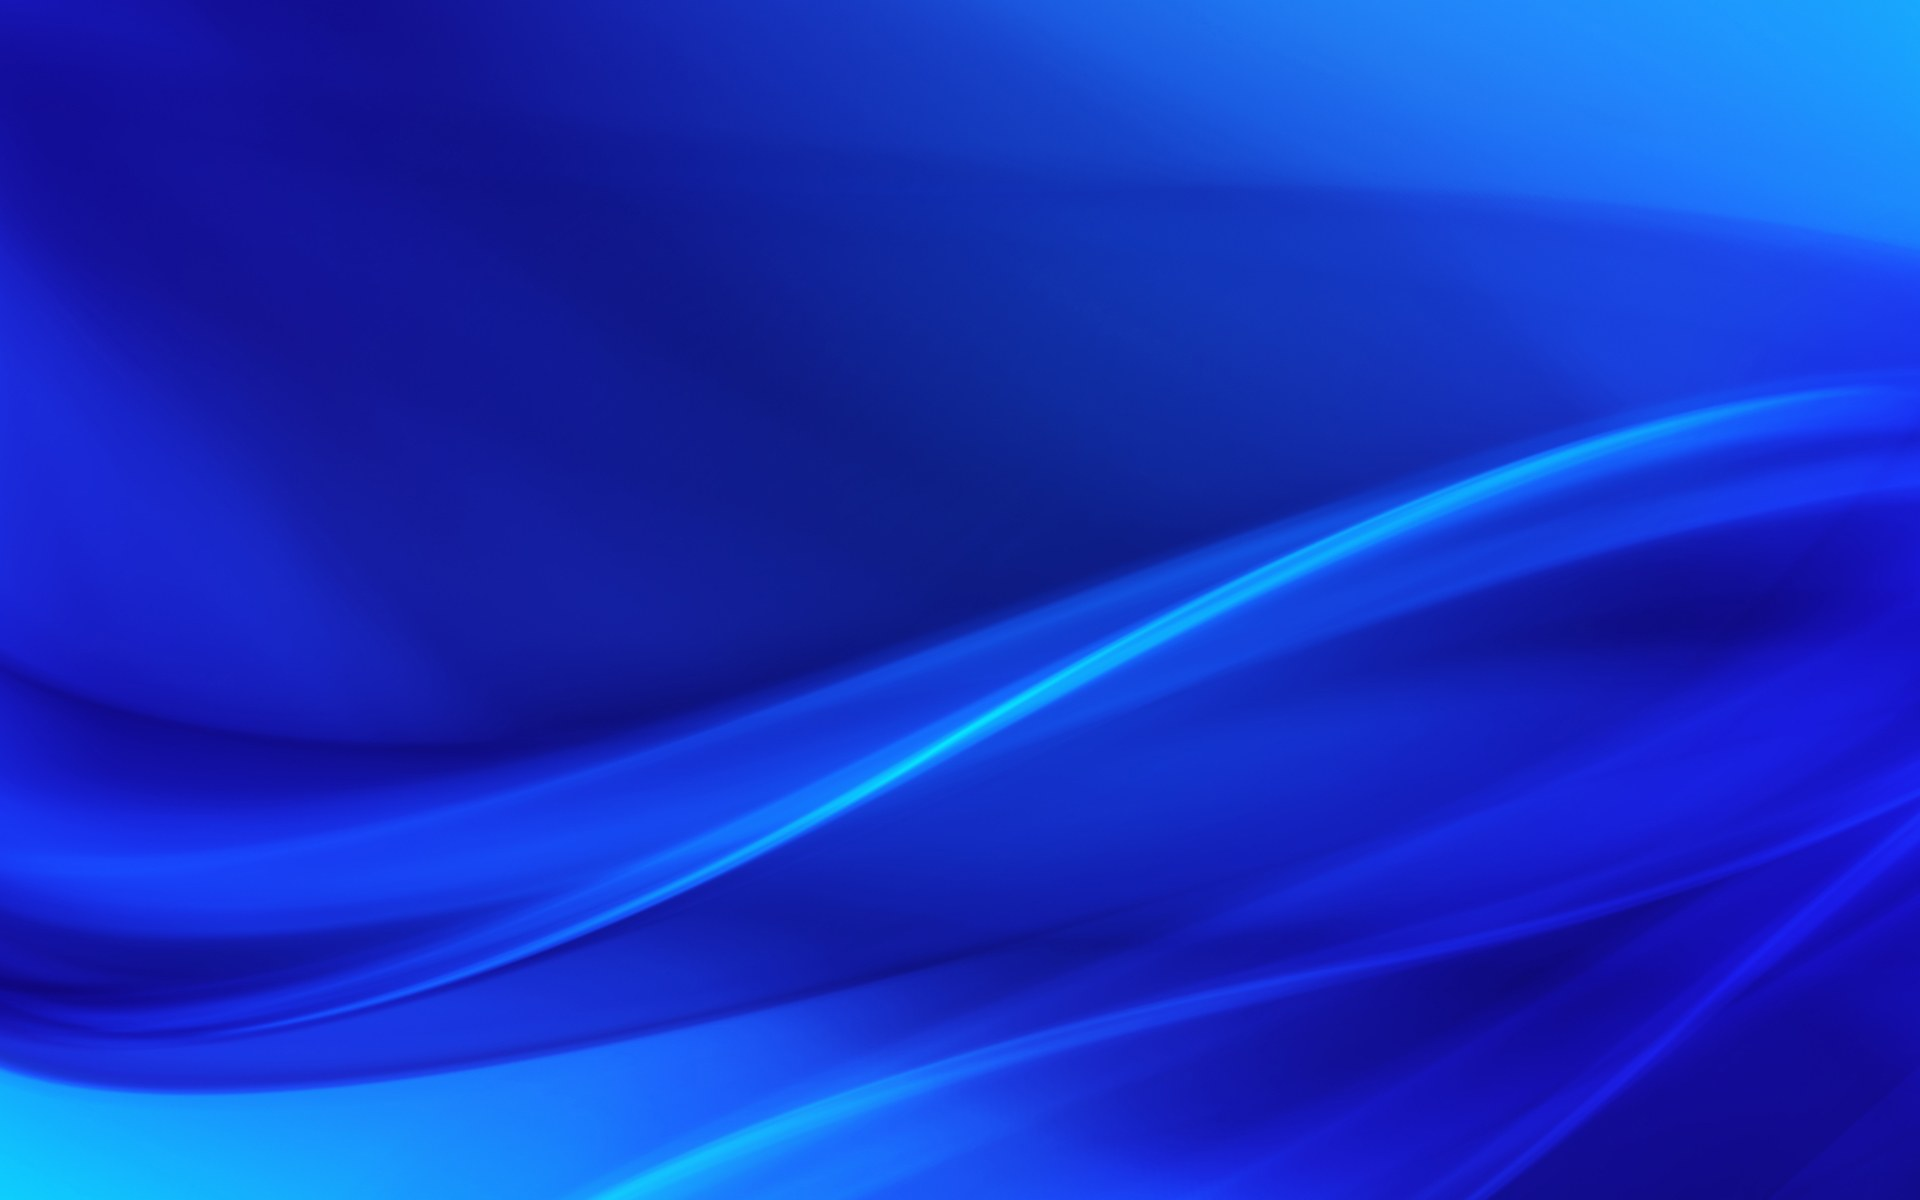 abstract-blue-backgrounds-34_1920x1200_71451.jpg (1920×1200) | Blue | Pinterest